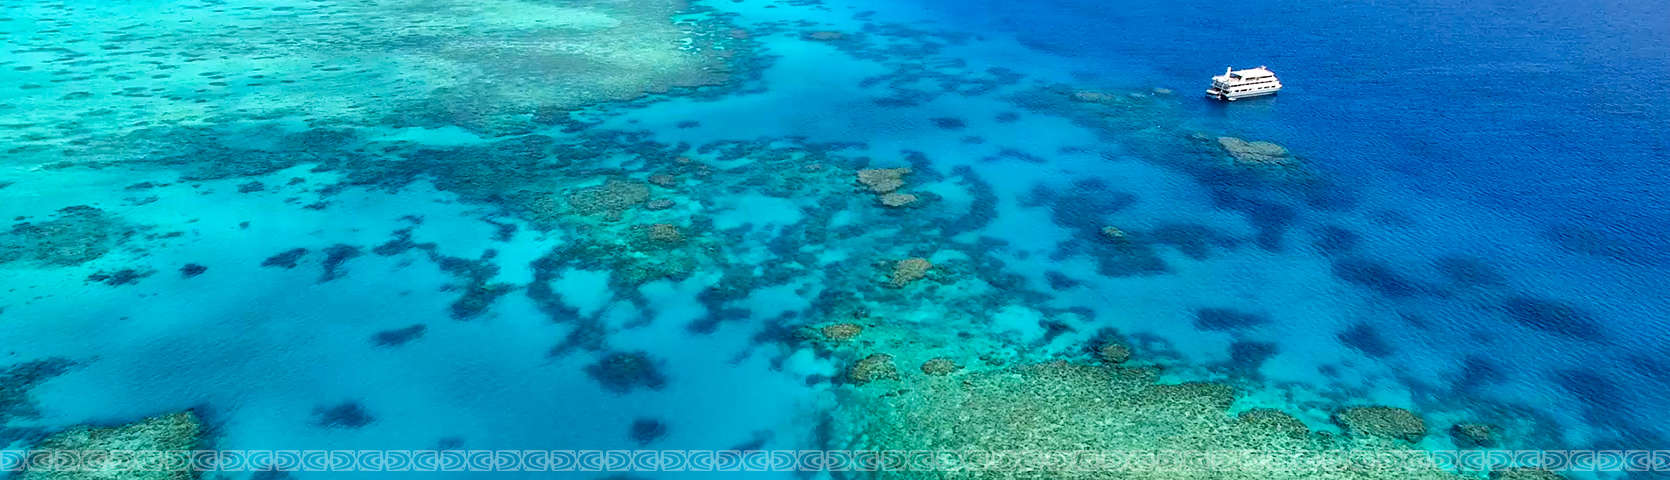 Great Barrier Reef Expedition Cruise